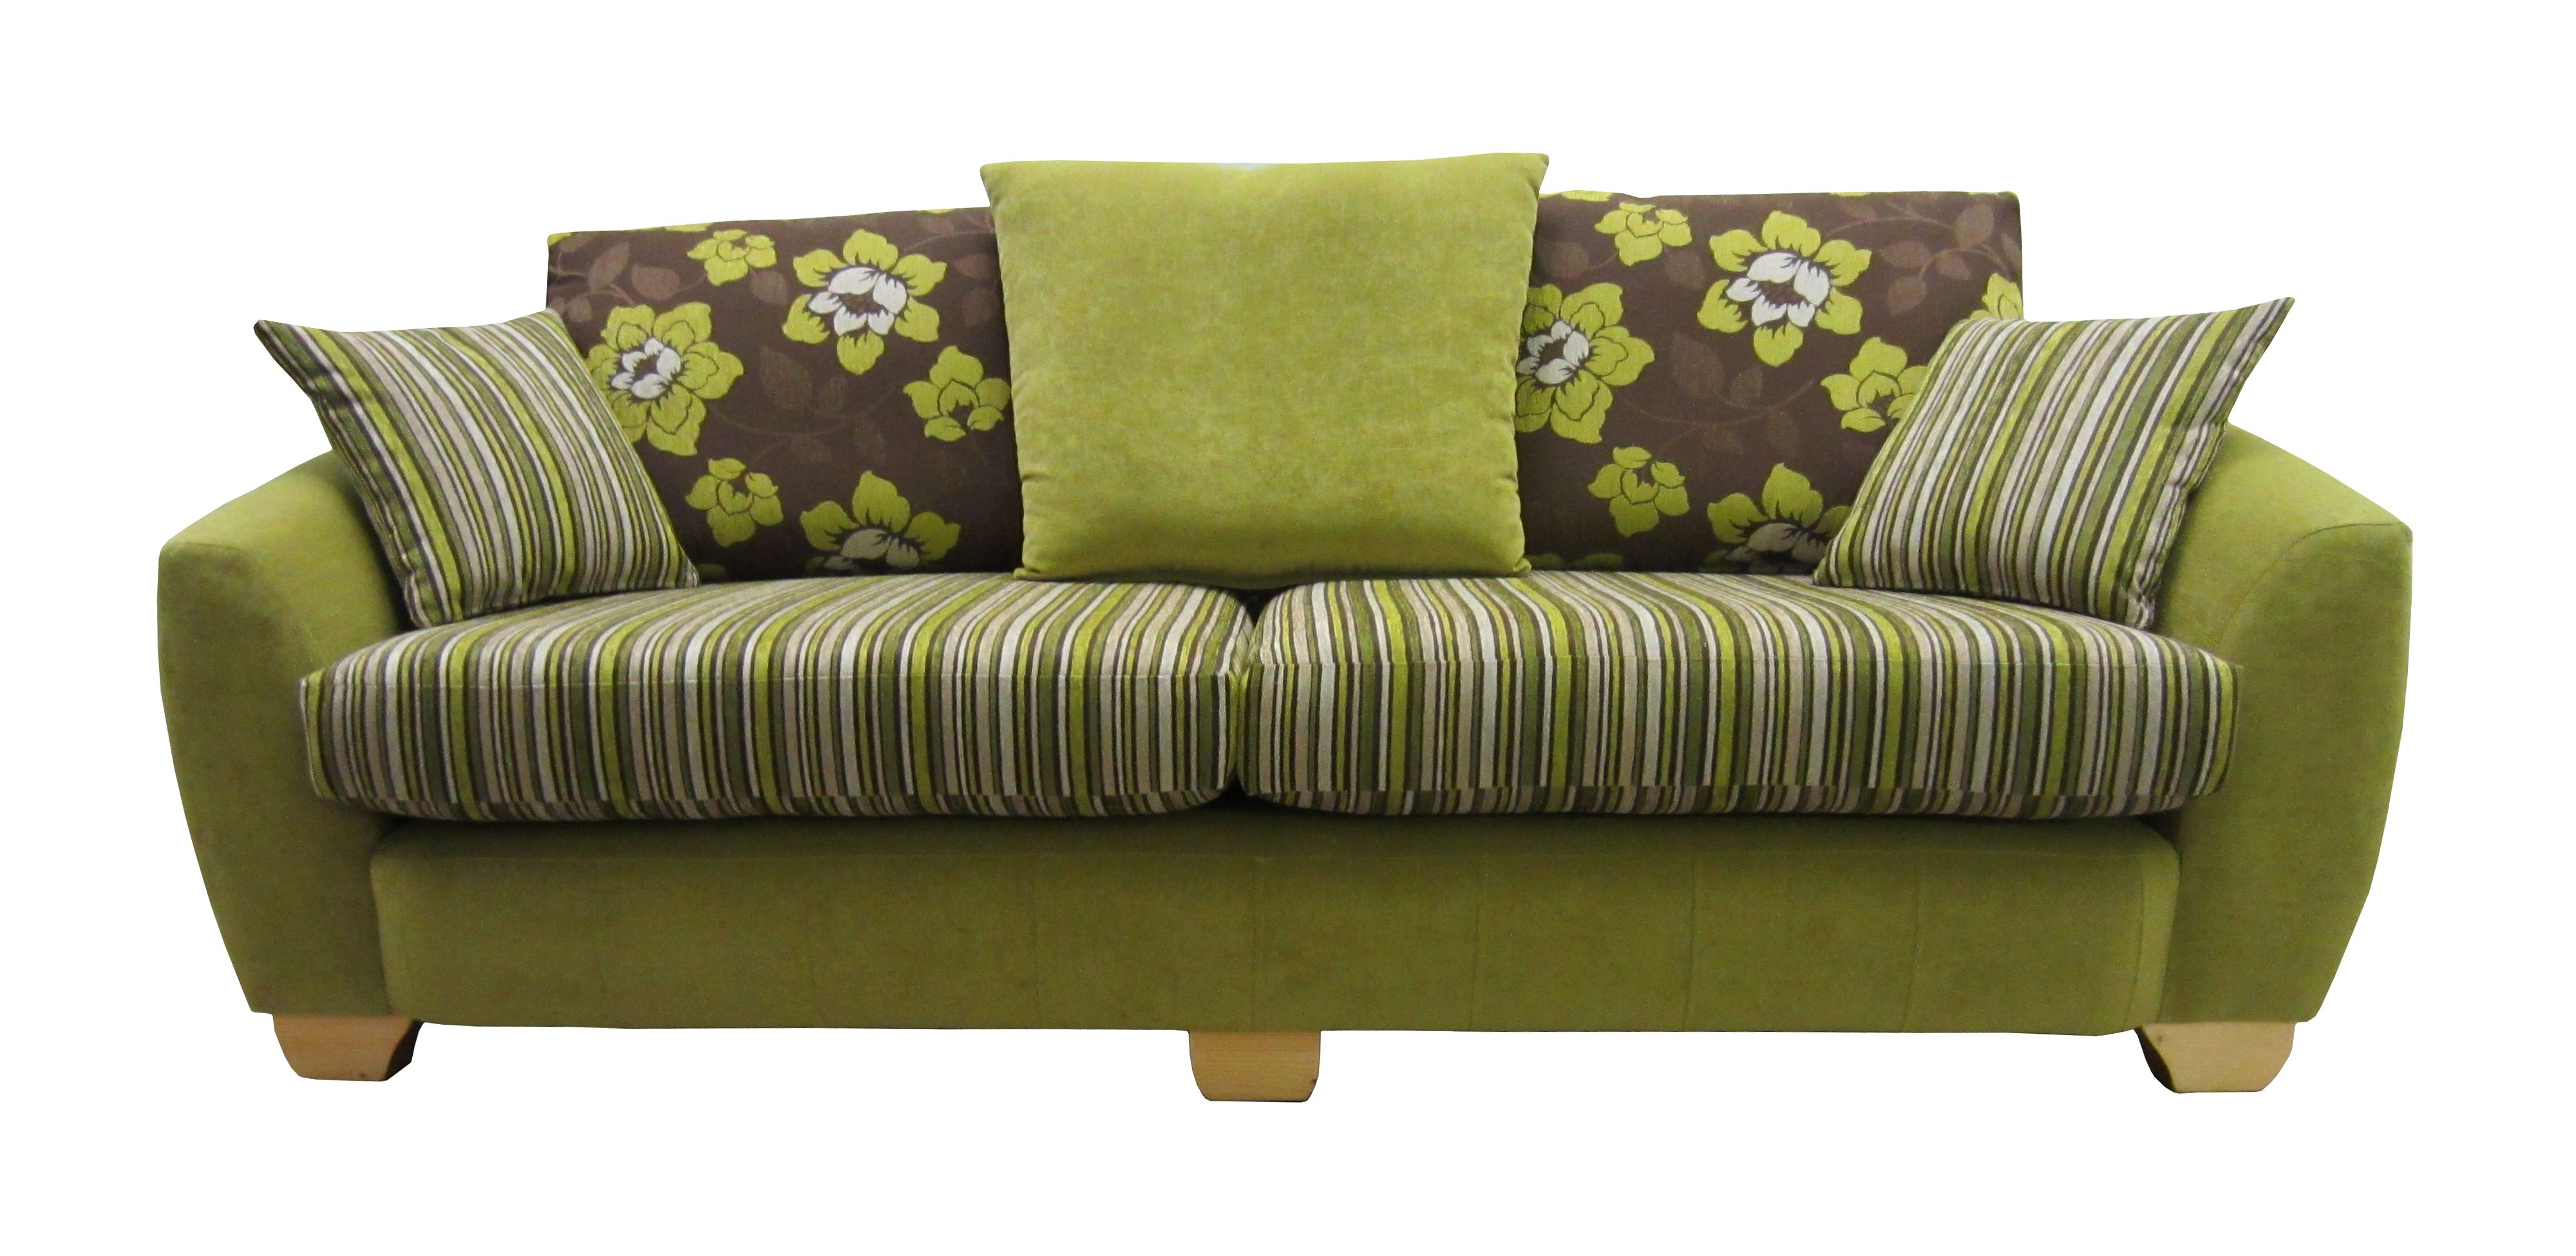 Lime green and brown 3 seater Vigo This sofa has a matching chair